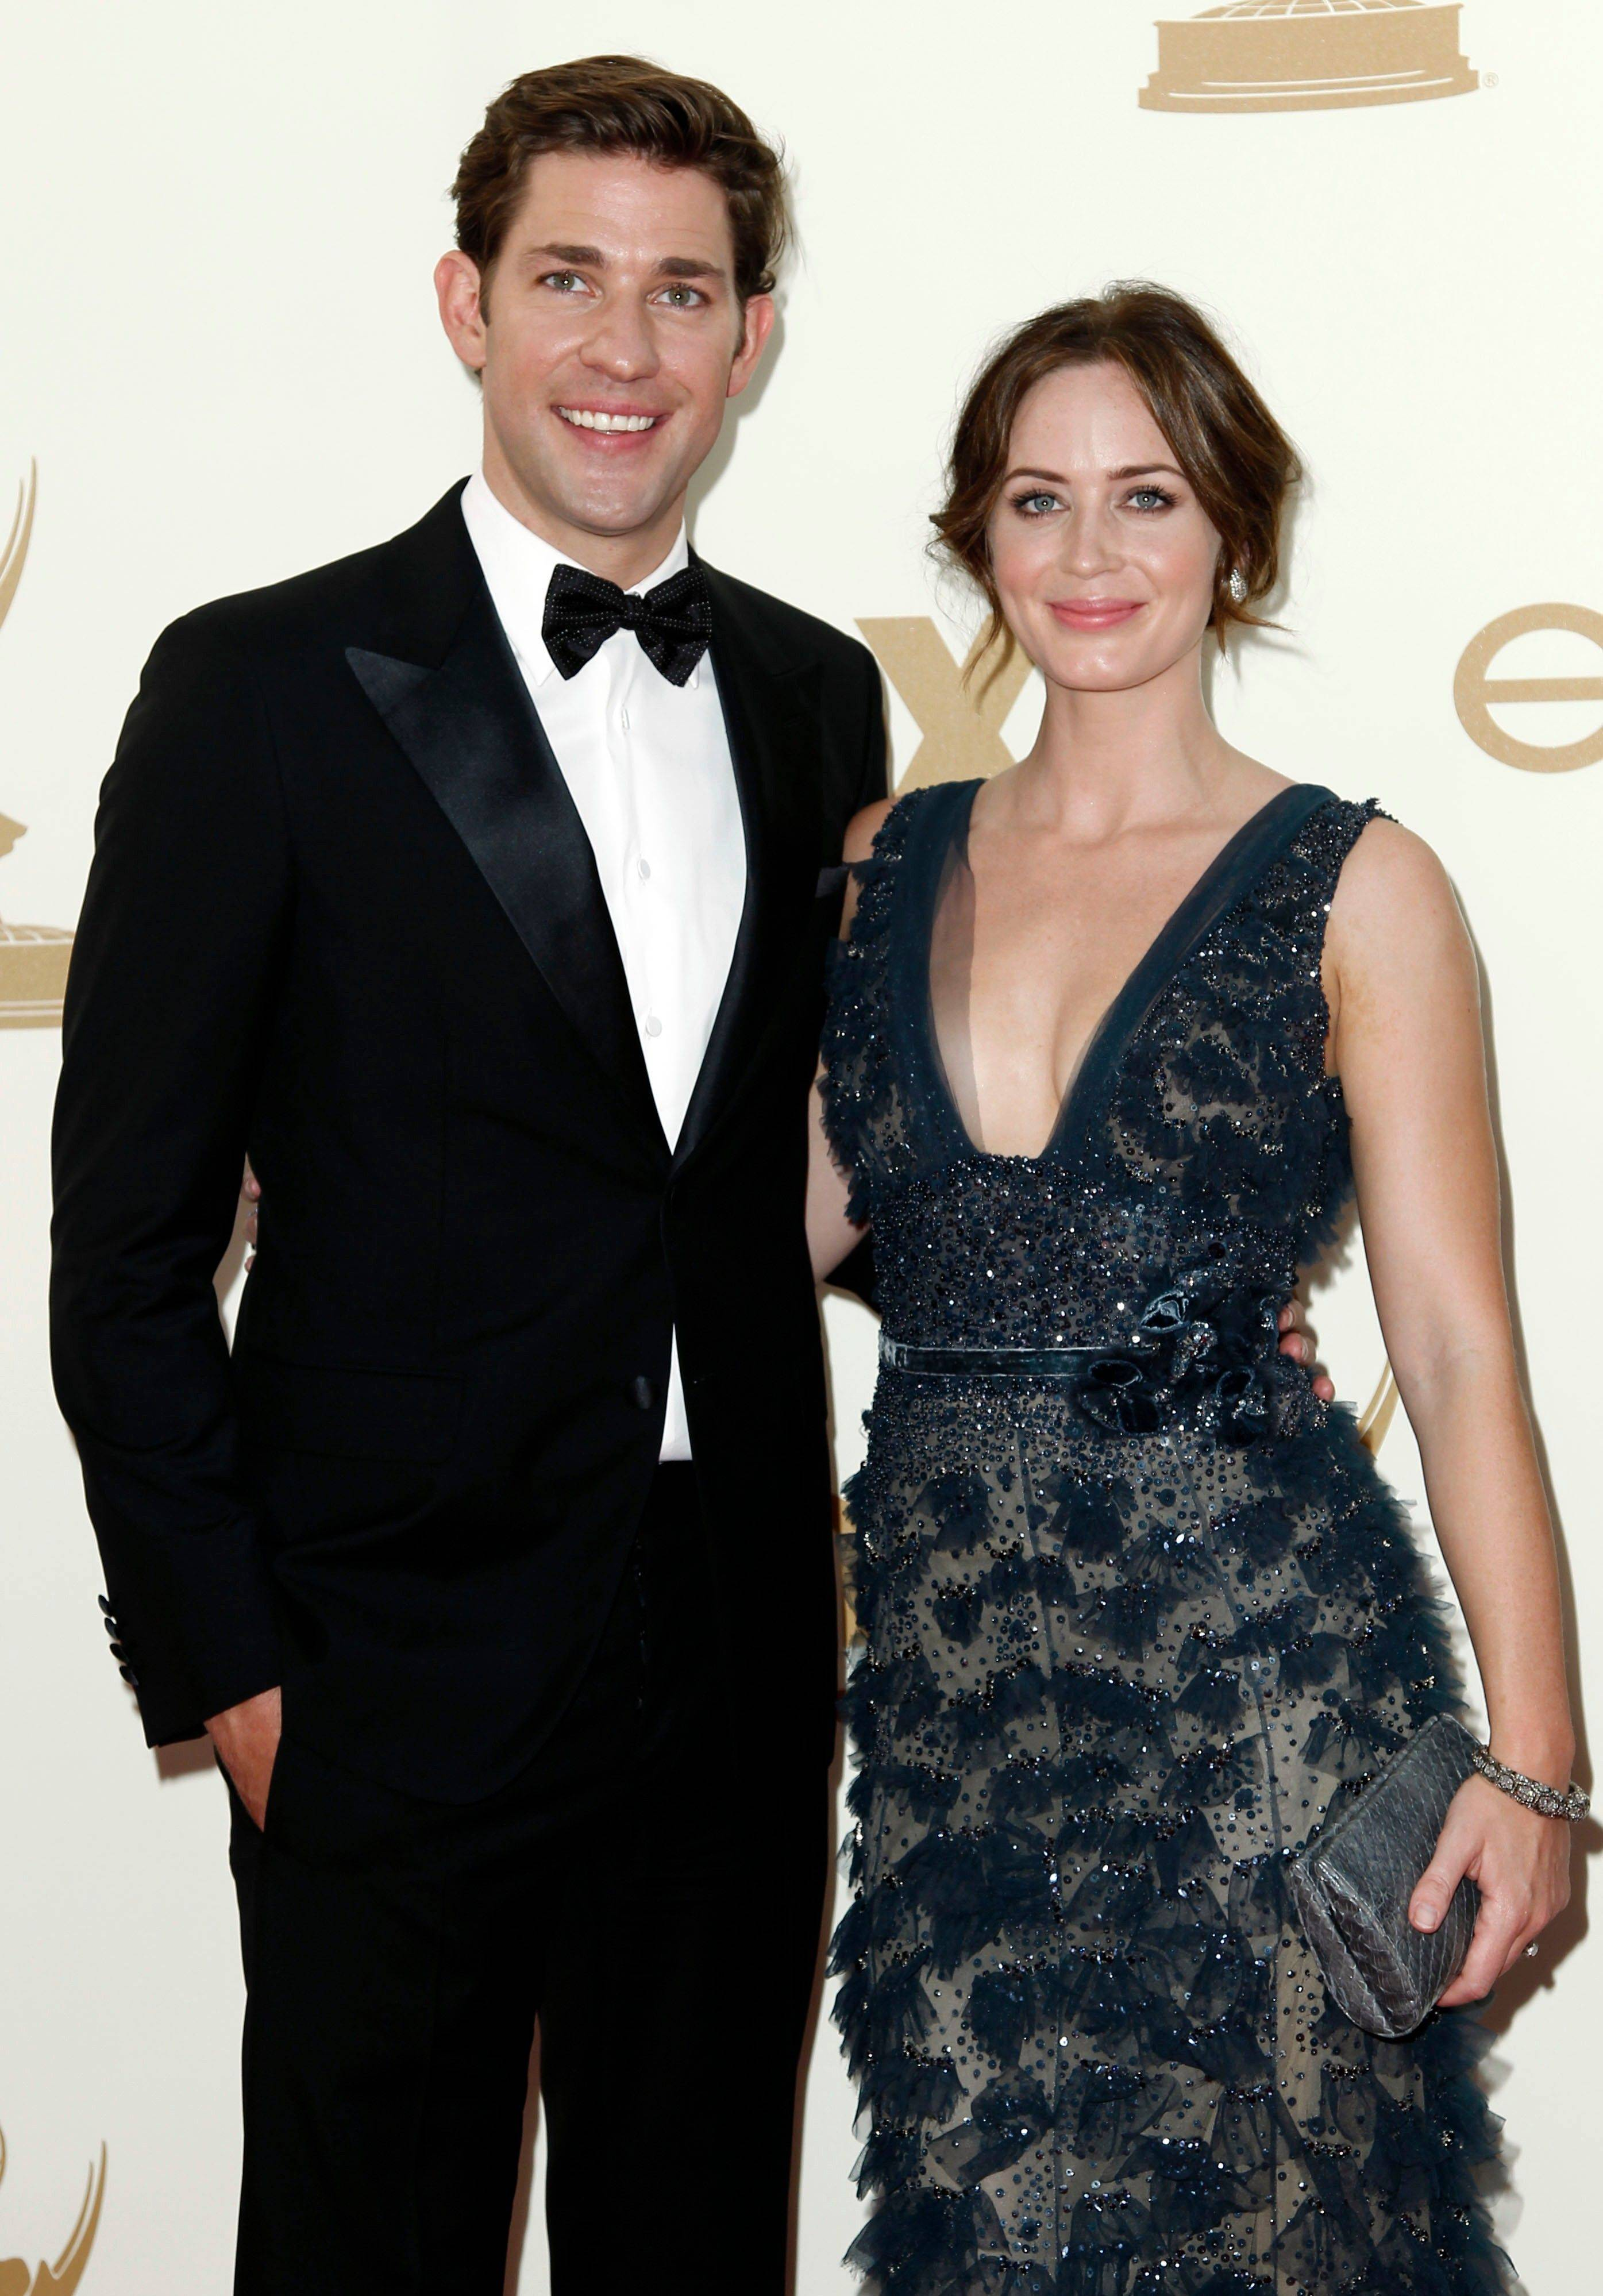 """The Office"" star John Krasinski and his wife, actress Emily Blunt, trot out there sophisticated evening wear for a night at the Emmys."